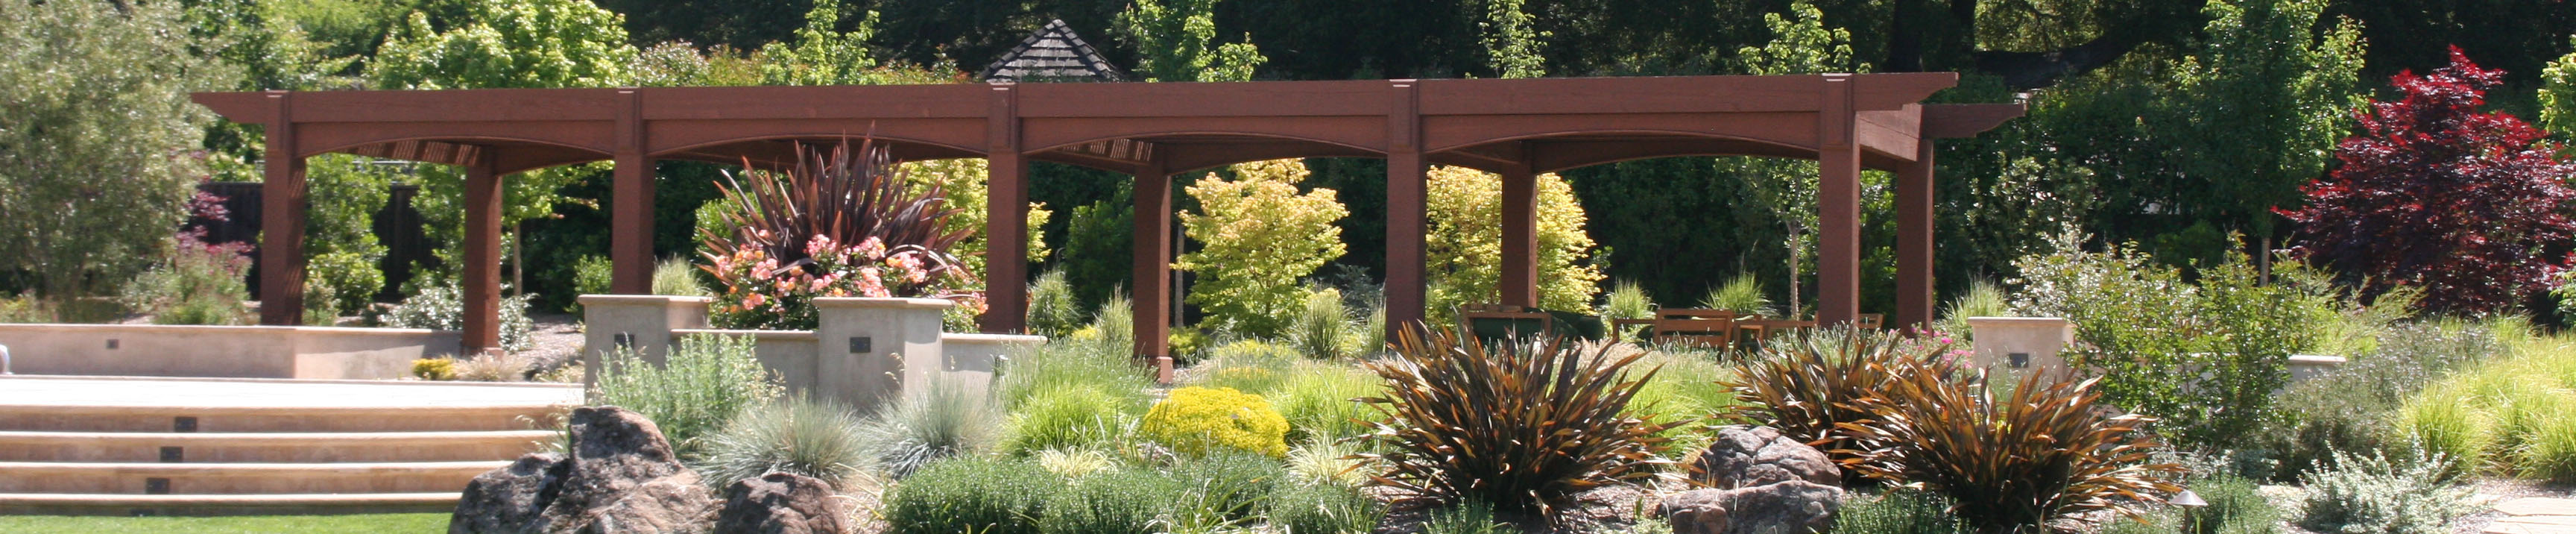 Feel Free Houzz Pictures Of Landscaping Gardens Dry Creek - dry garden design brooke